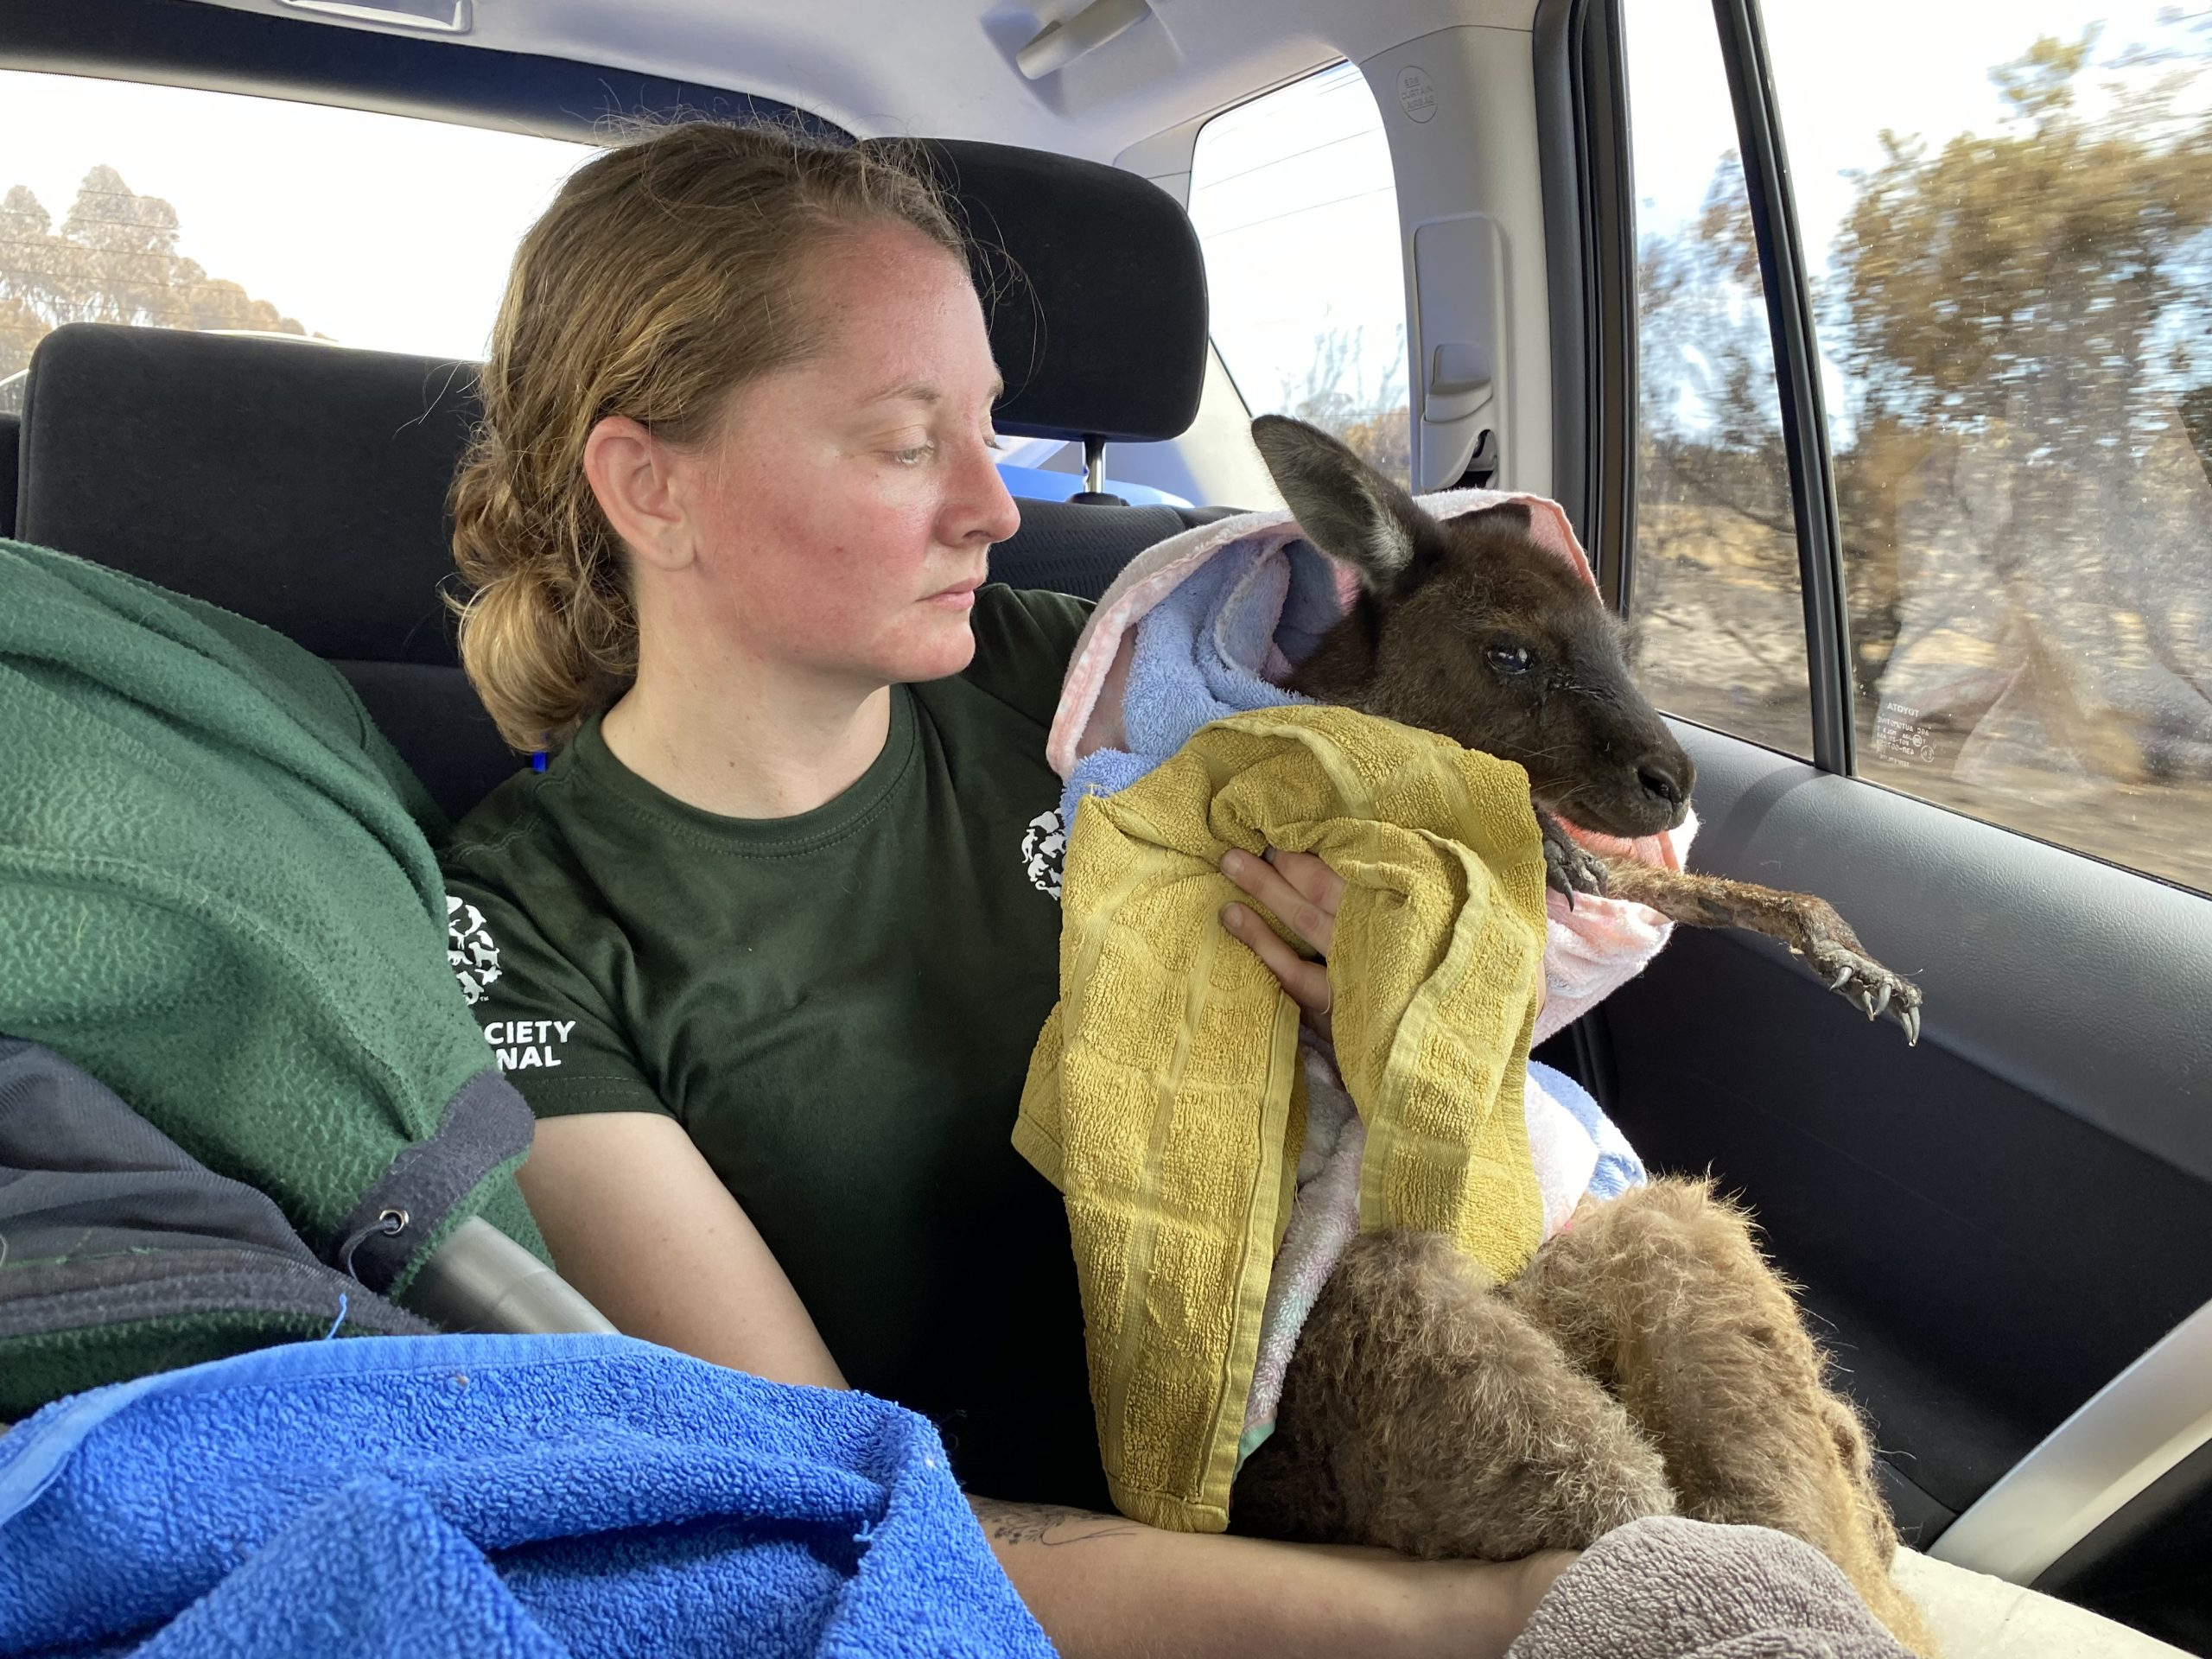 HSI rescue team with kangaroo saved from fires